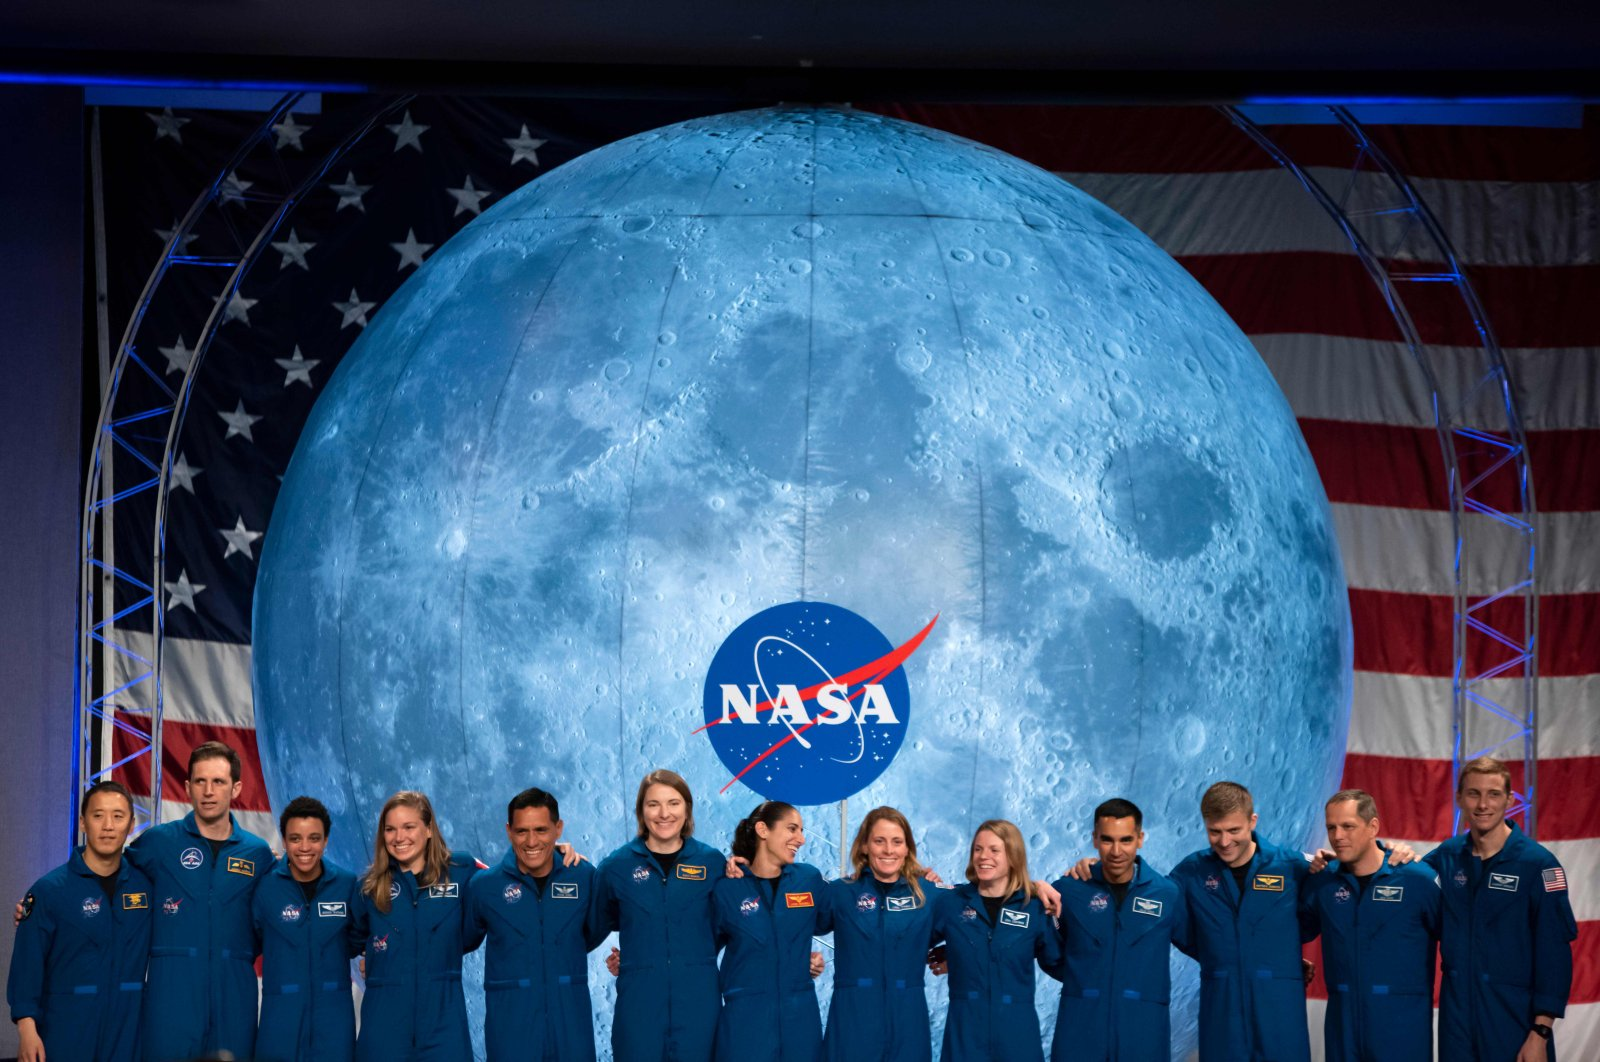 In this file photo taken on Jan. 10, 2020, NASA and Canadian Space Agency (CSA) astronauts acknowledge the audience after their graduation ceremony at Johnson Space Center in Houston Texas. (AFP Photo)